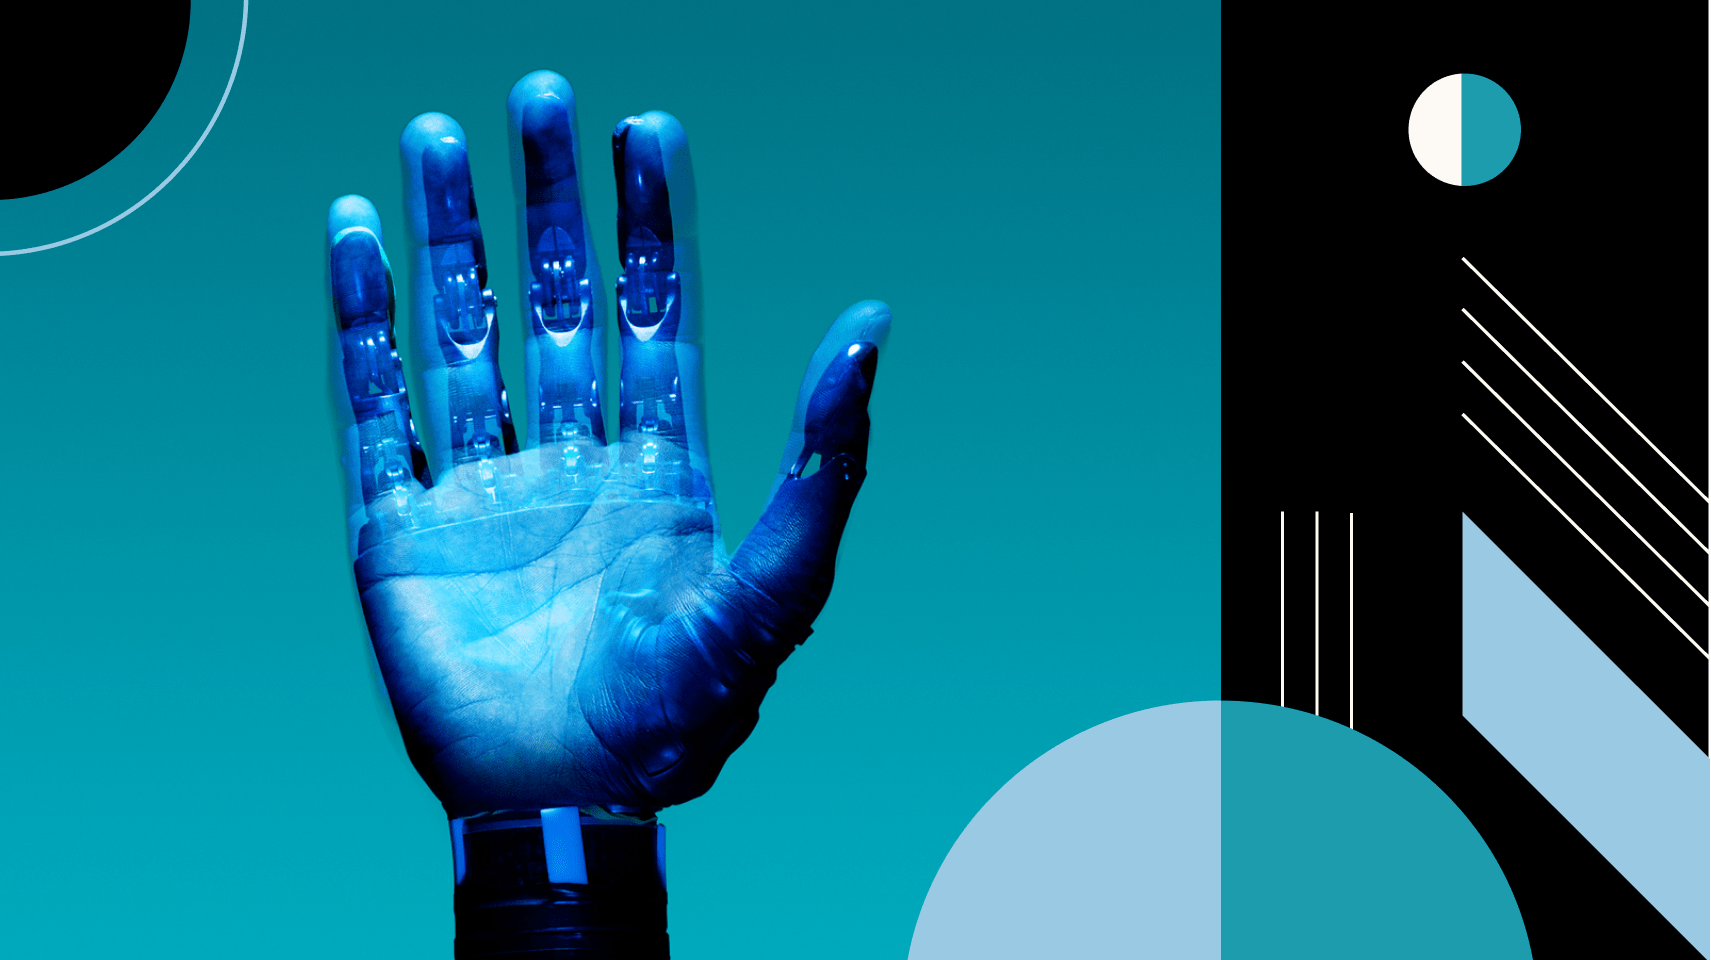 Artificial intelligence becoming more human with an overlay of robot and designer hands